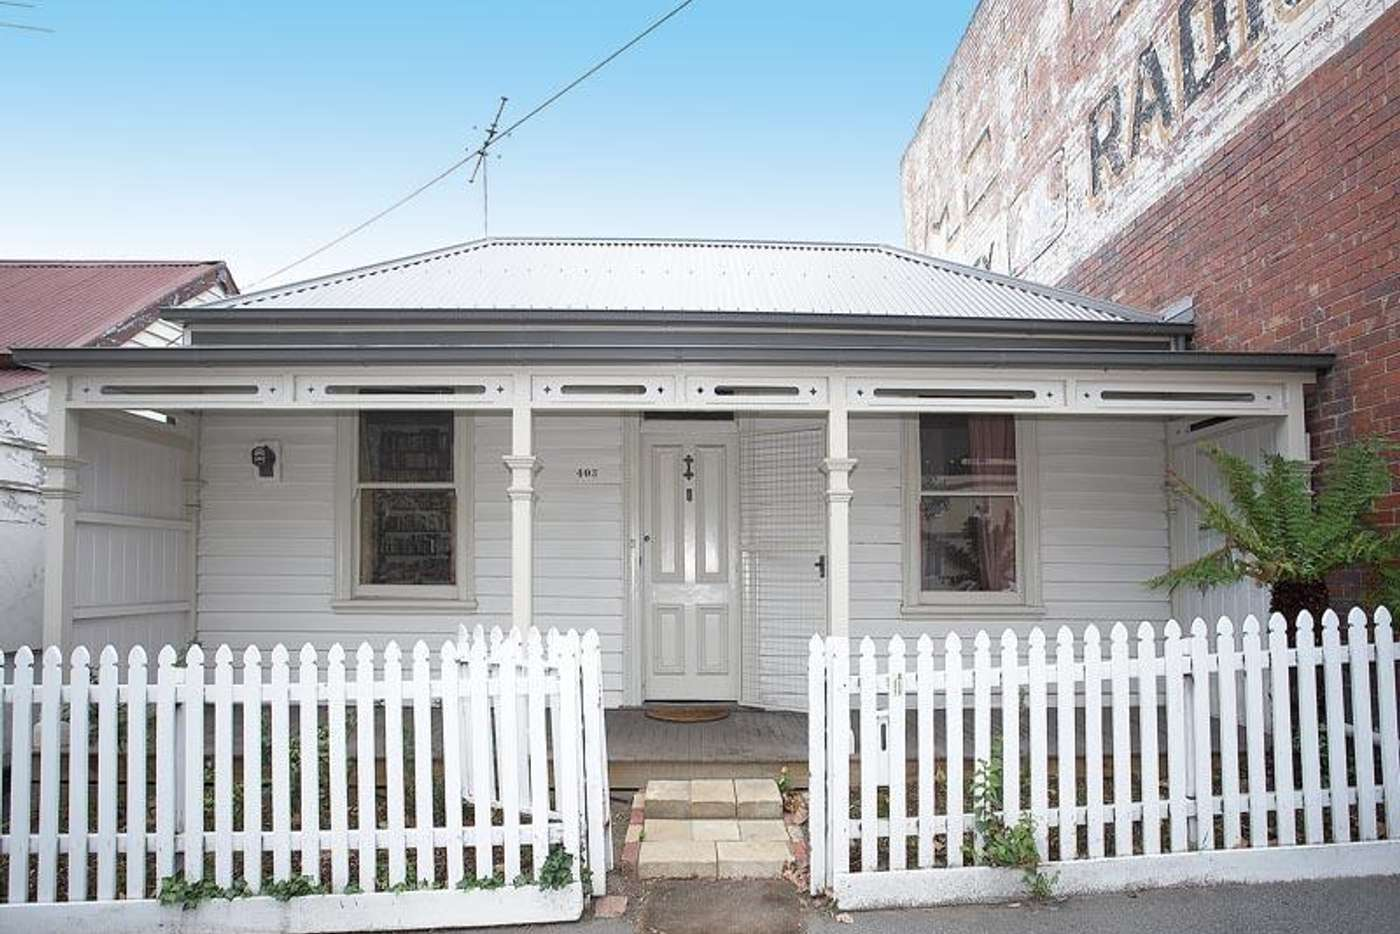 Main view of Homely house listing, 403 Abbotsford Street, North Melbourne VIC 3051